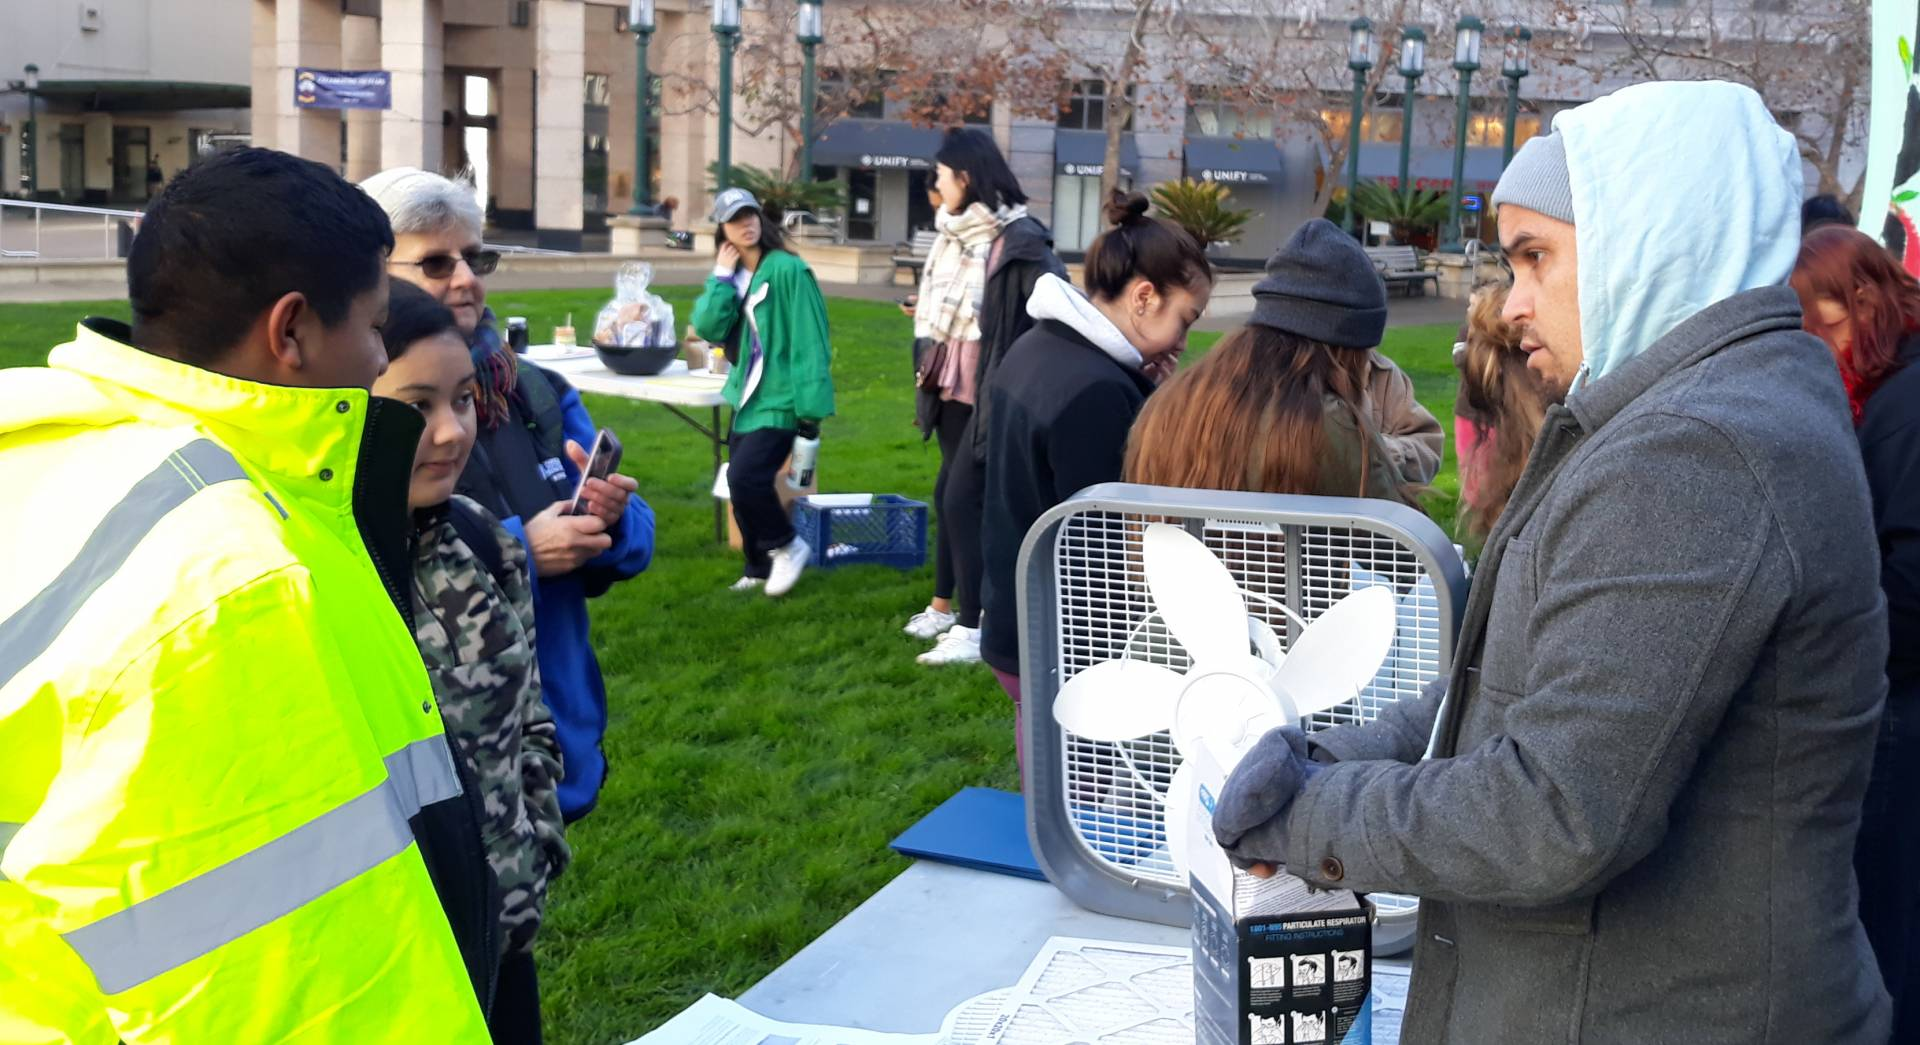 Dani Cornejo, an educator with the Mycelium Youth Network, teaches young people how to make their own air purifiers out of a box fan and air filter at a climate change event in Oakland in January. Lil Milagro Henriquez/Mycelium Youth Network